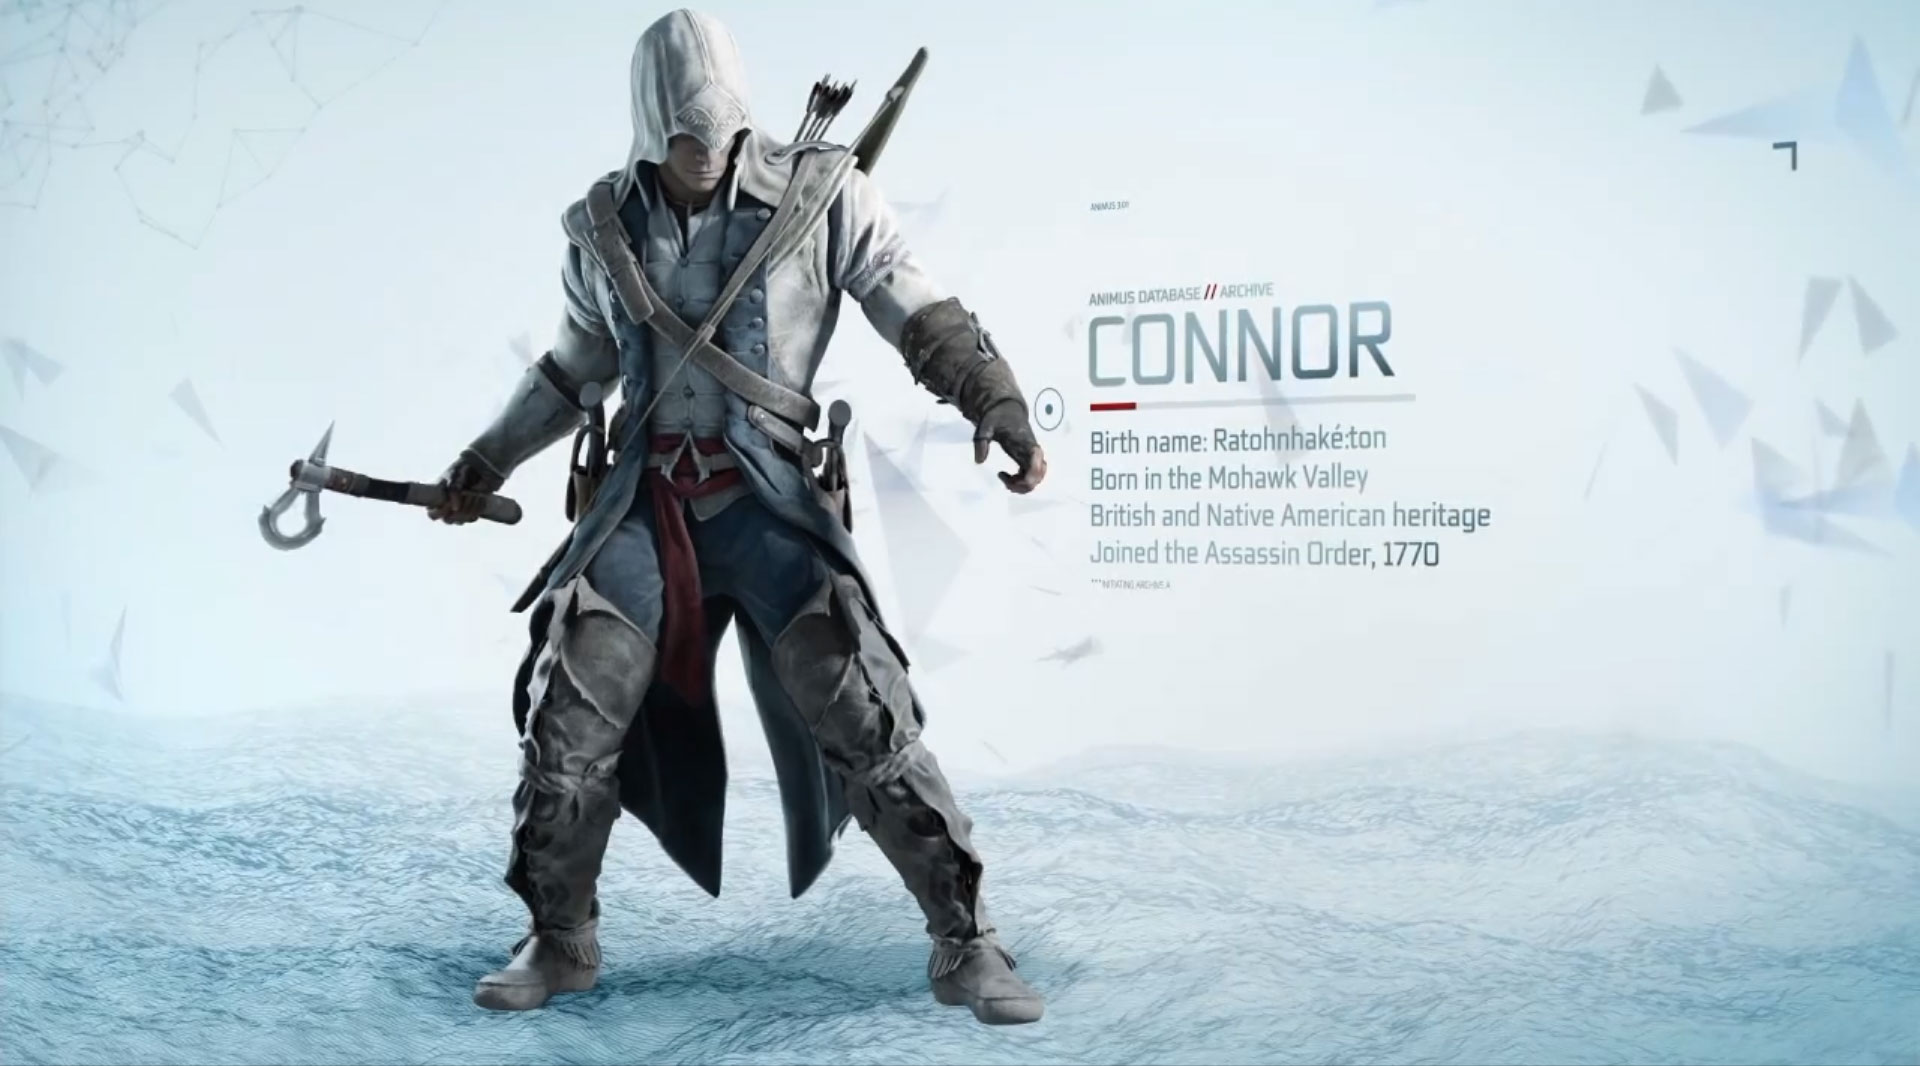 Image result for Connor Assassin's Creed 3